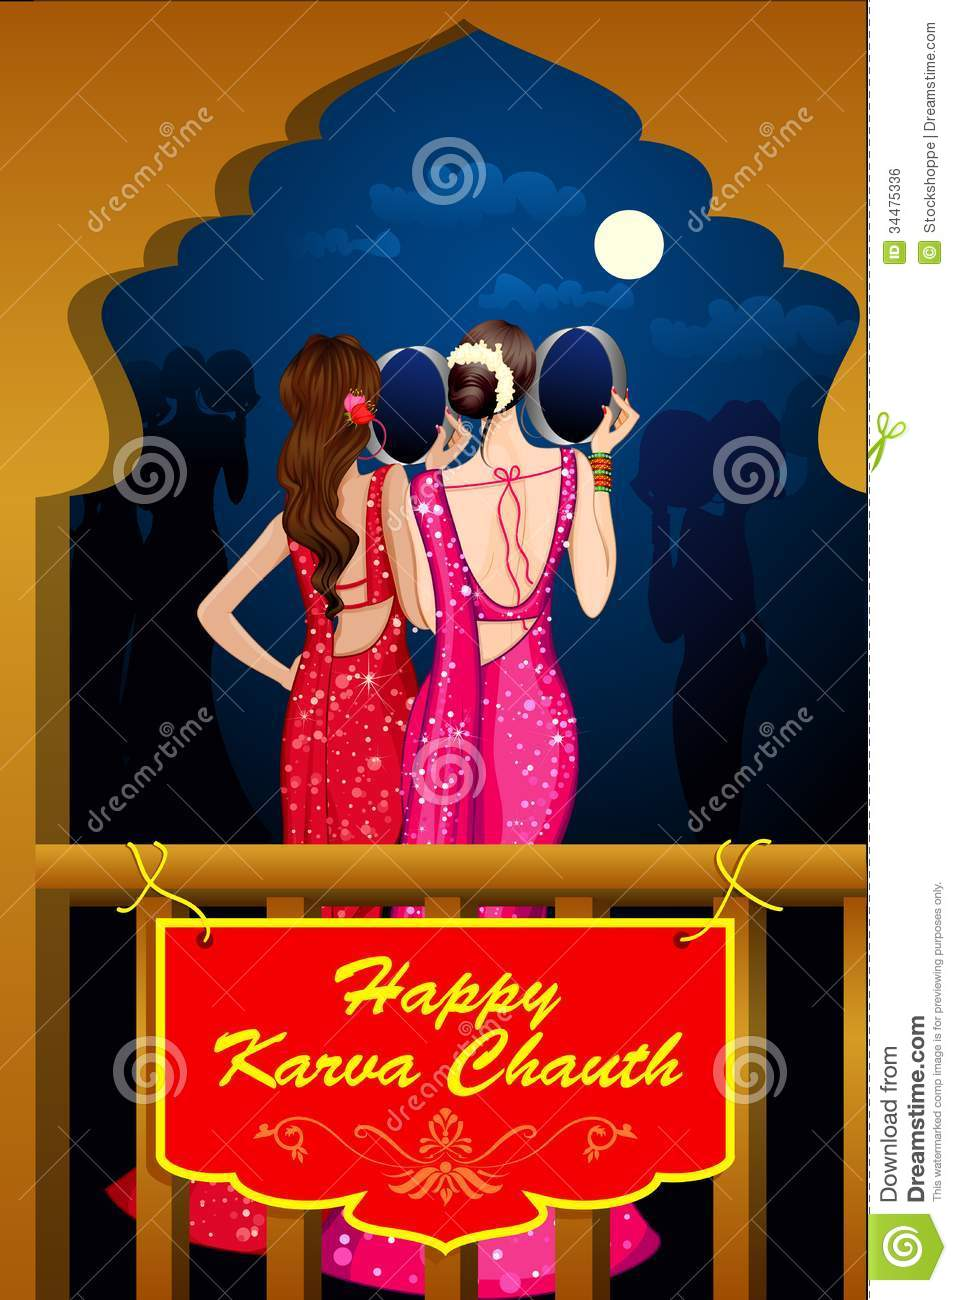 Indian Lady Celebrating Karwa Chauth Royalty Free Stock ...